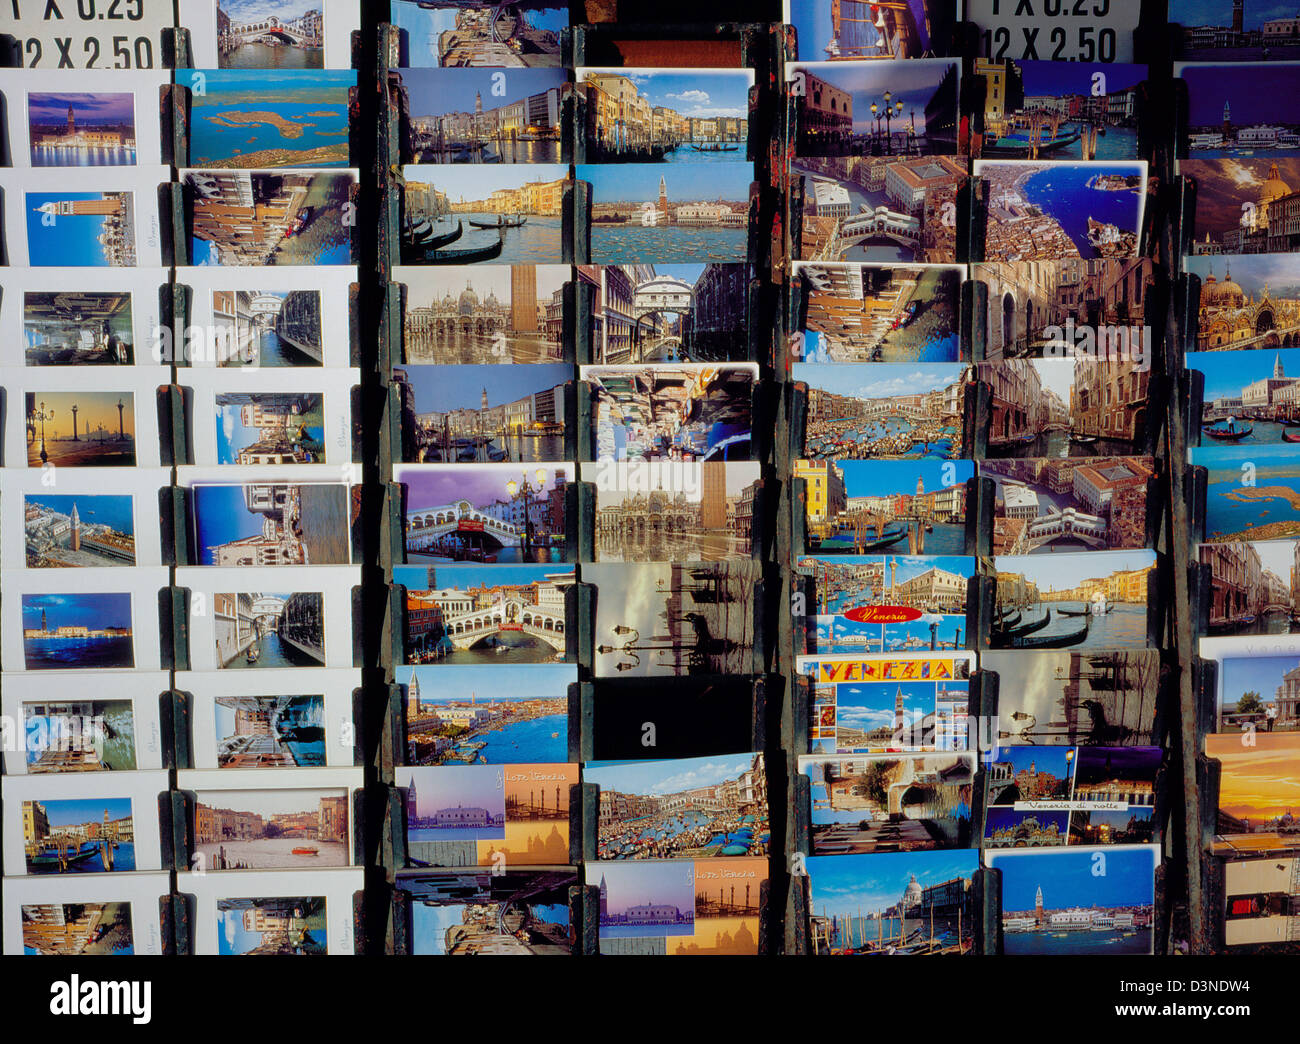 Postcards of Venice are on sale in a souvenir shop in Venice, Italy, February 2005. Photo: Willy Matheisl - Stock Image